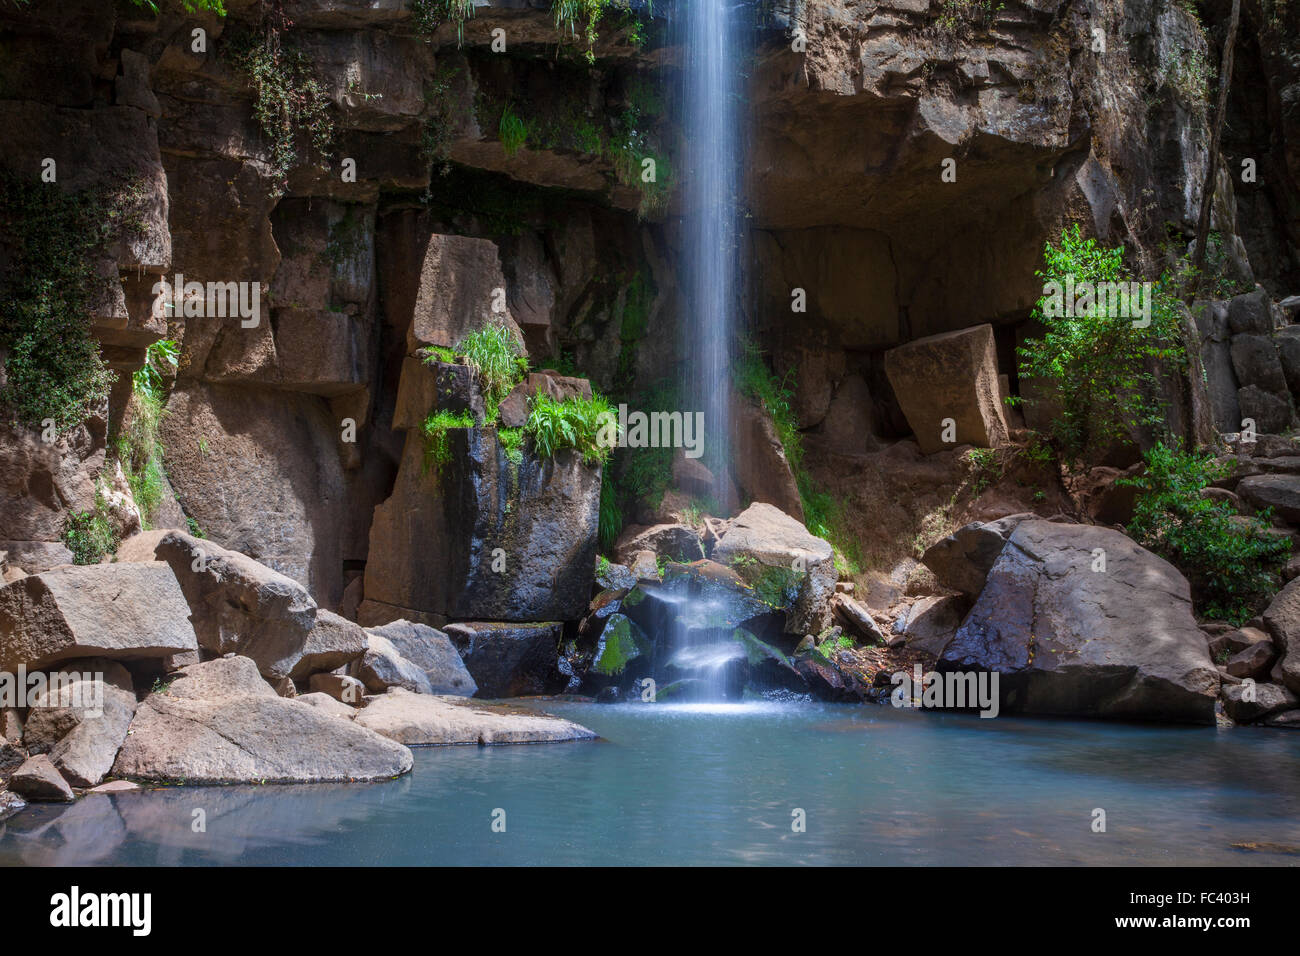 Detail of the El Salto Waterfall in Mazamitla, Jalisco, Mexico. - Stock Image